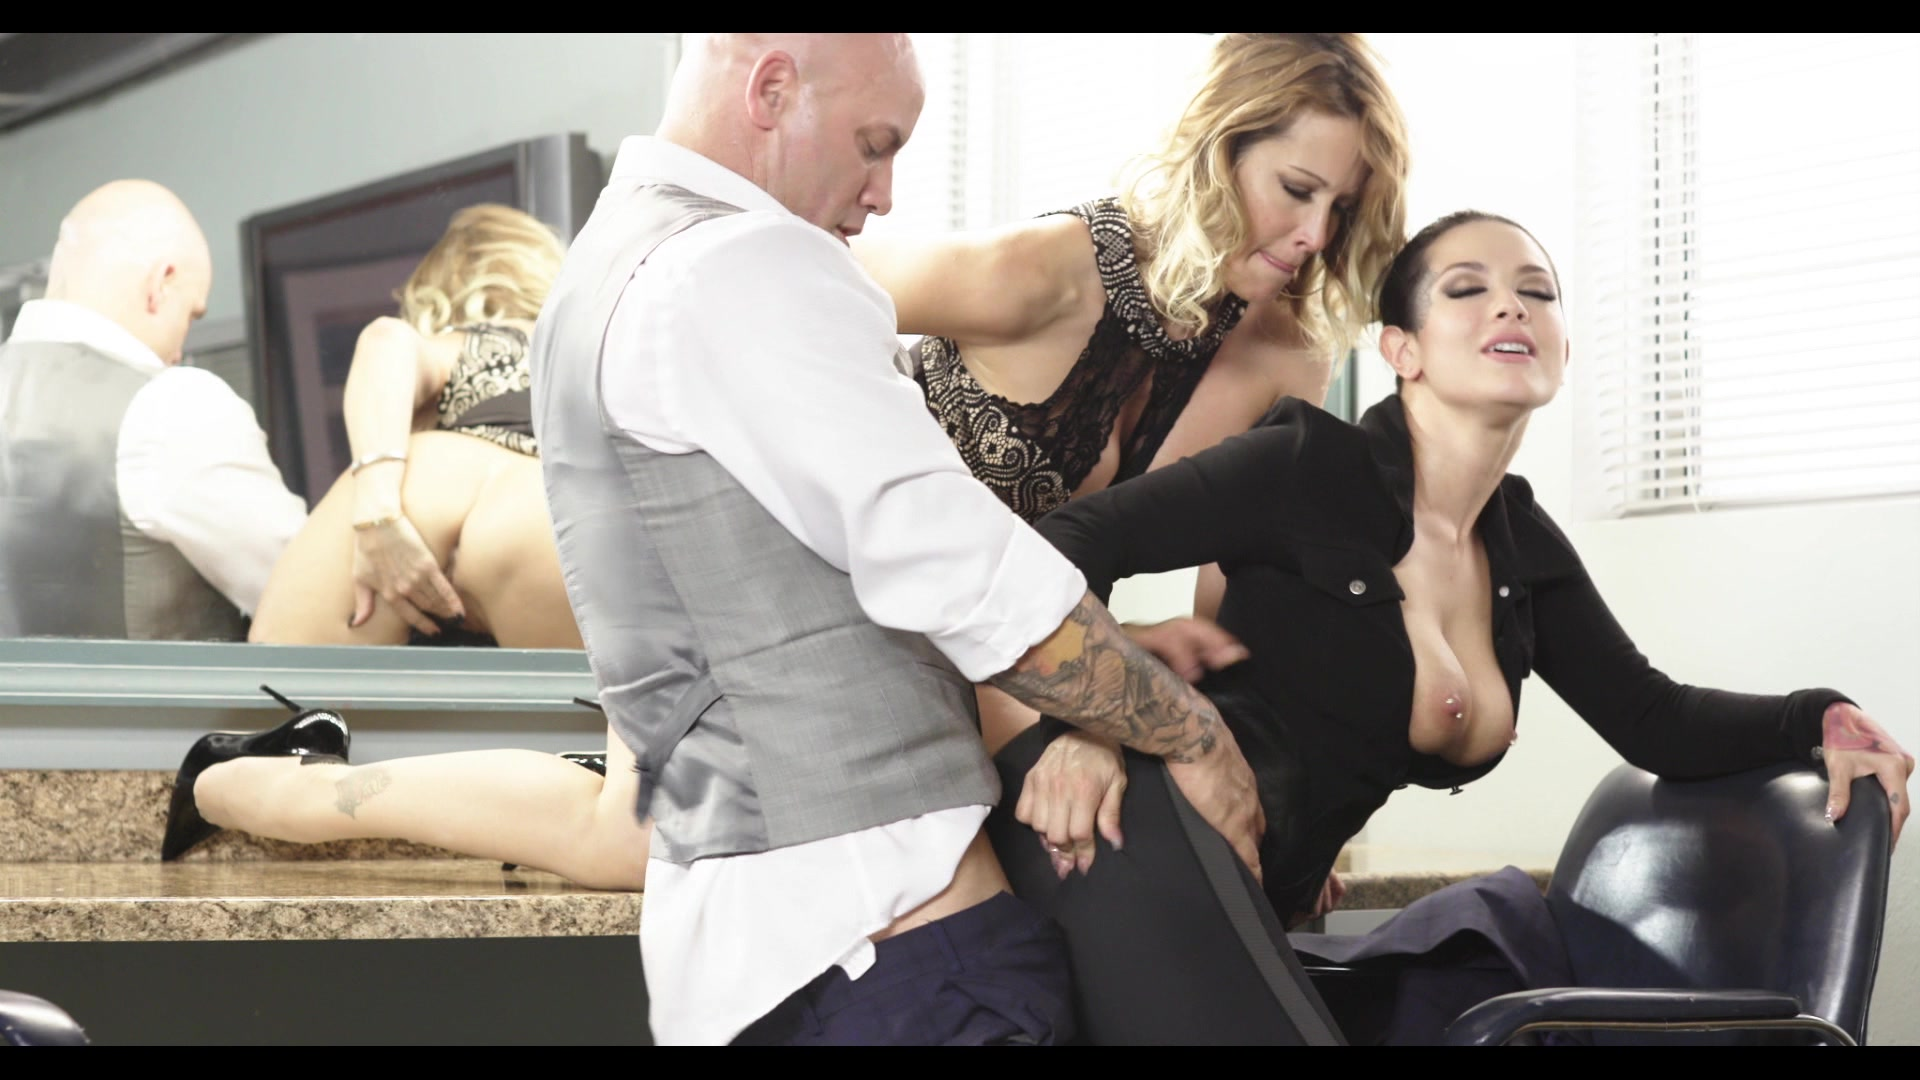 Scene with Jessica Drake, Derrick Pierce and Katrina Jade - image 18 out of 20